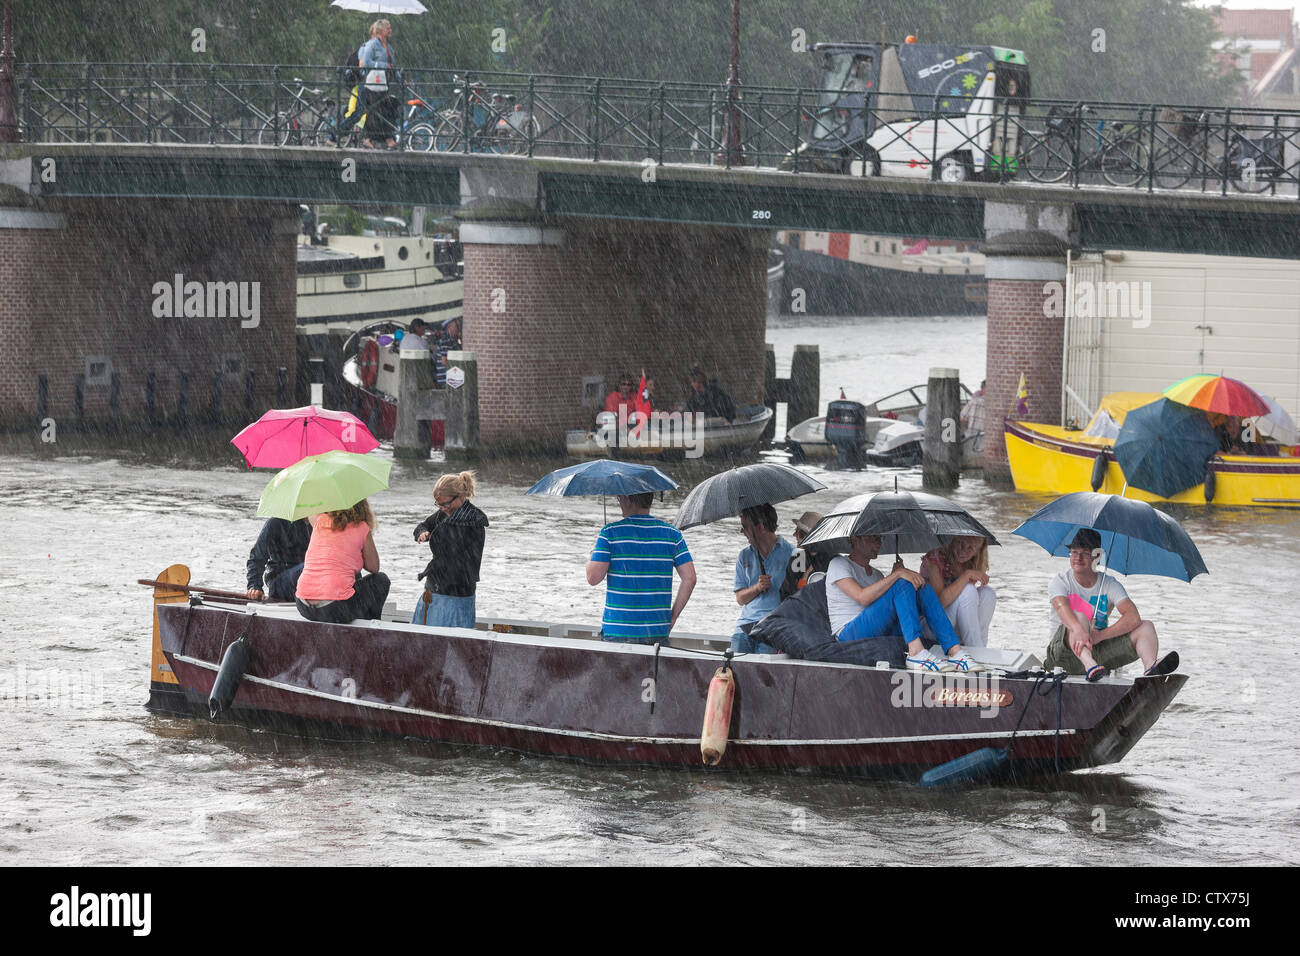 Sudden torrential summer rain in Amsterdam. 9 people in a small boat, sloop, with umbrellas. - Stock Image